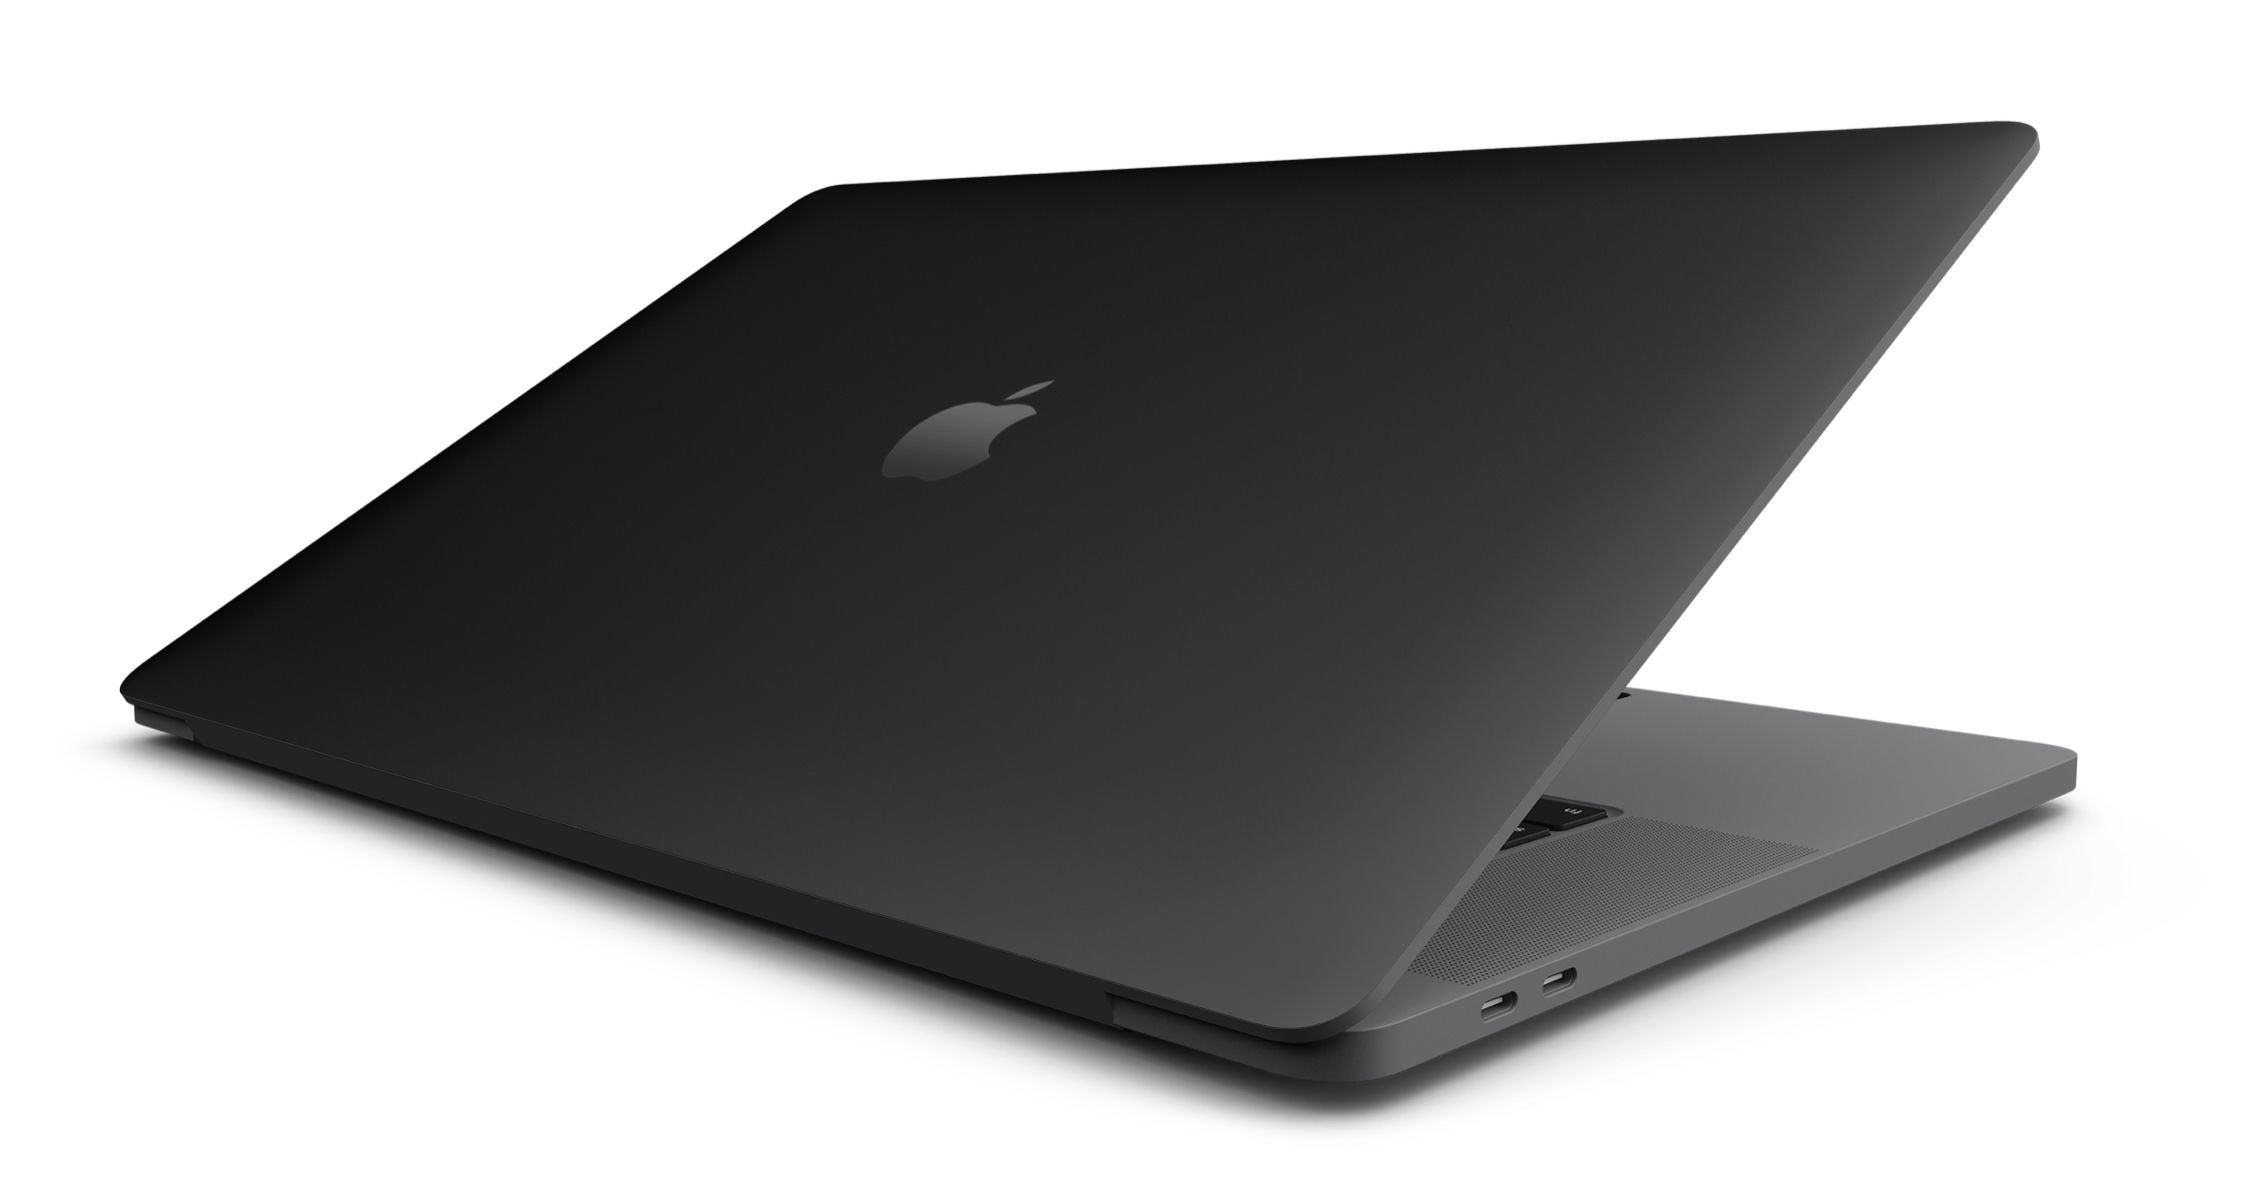 photo of Apple Researching High-End Titanium MacBook Casings With Unique Textured Finish image